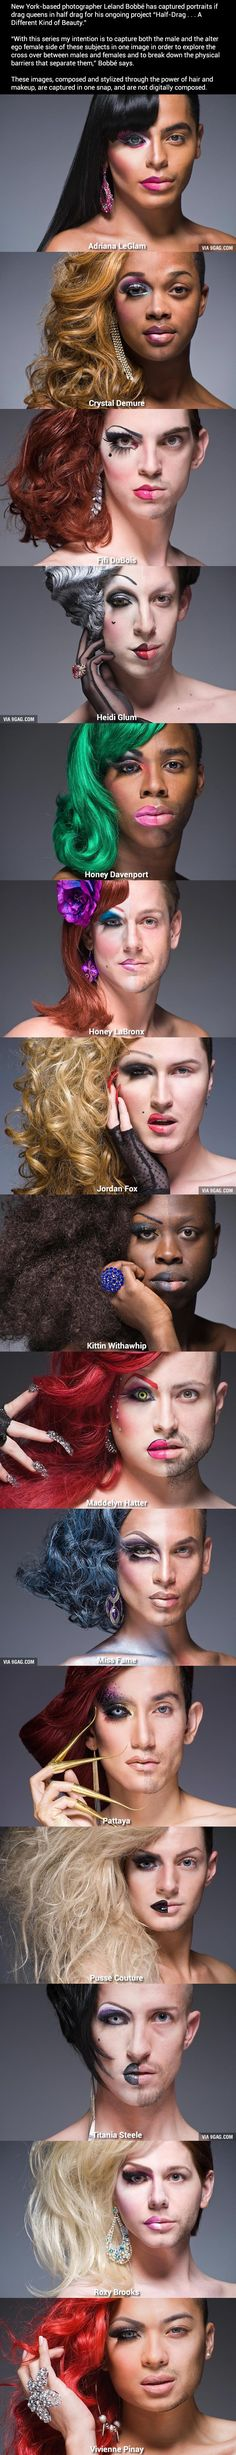 Half-Drag . . . A Different Kind of Beauty. I find this kind of interesting. The power of make up.